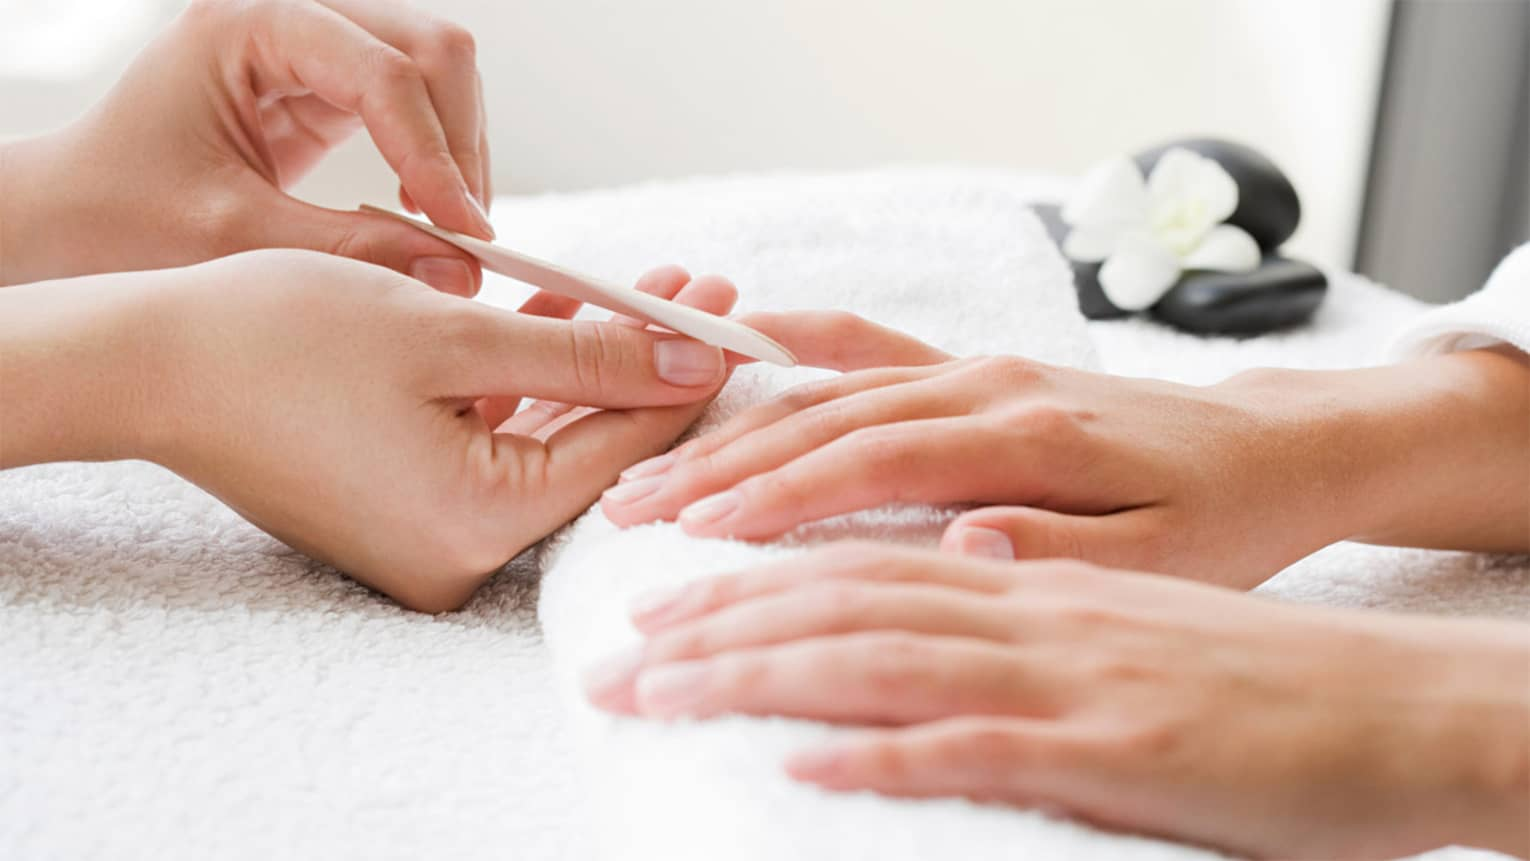 Close-up of spa attendant filing nails of woman's hands as they rest on white towel